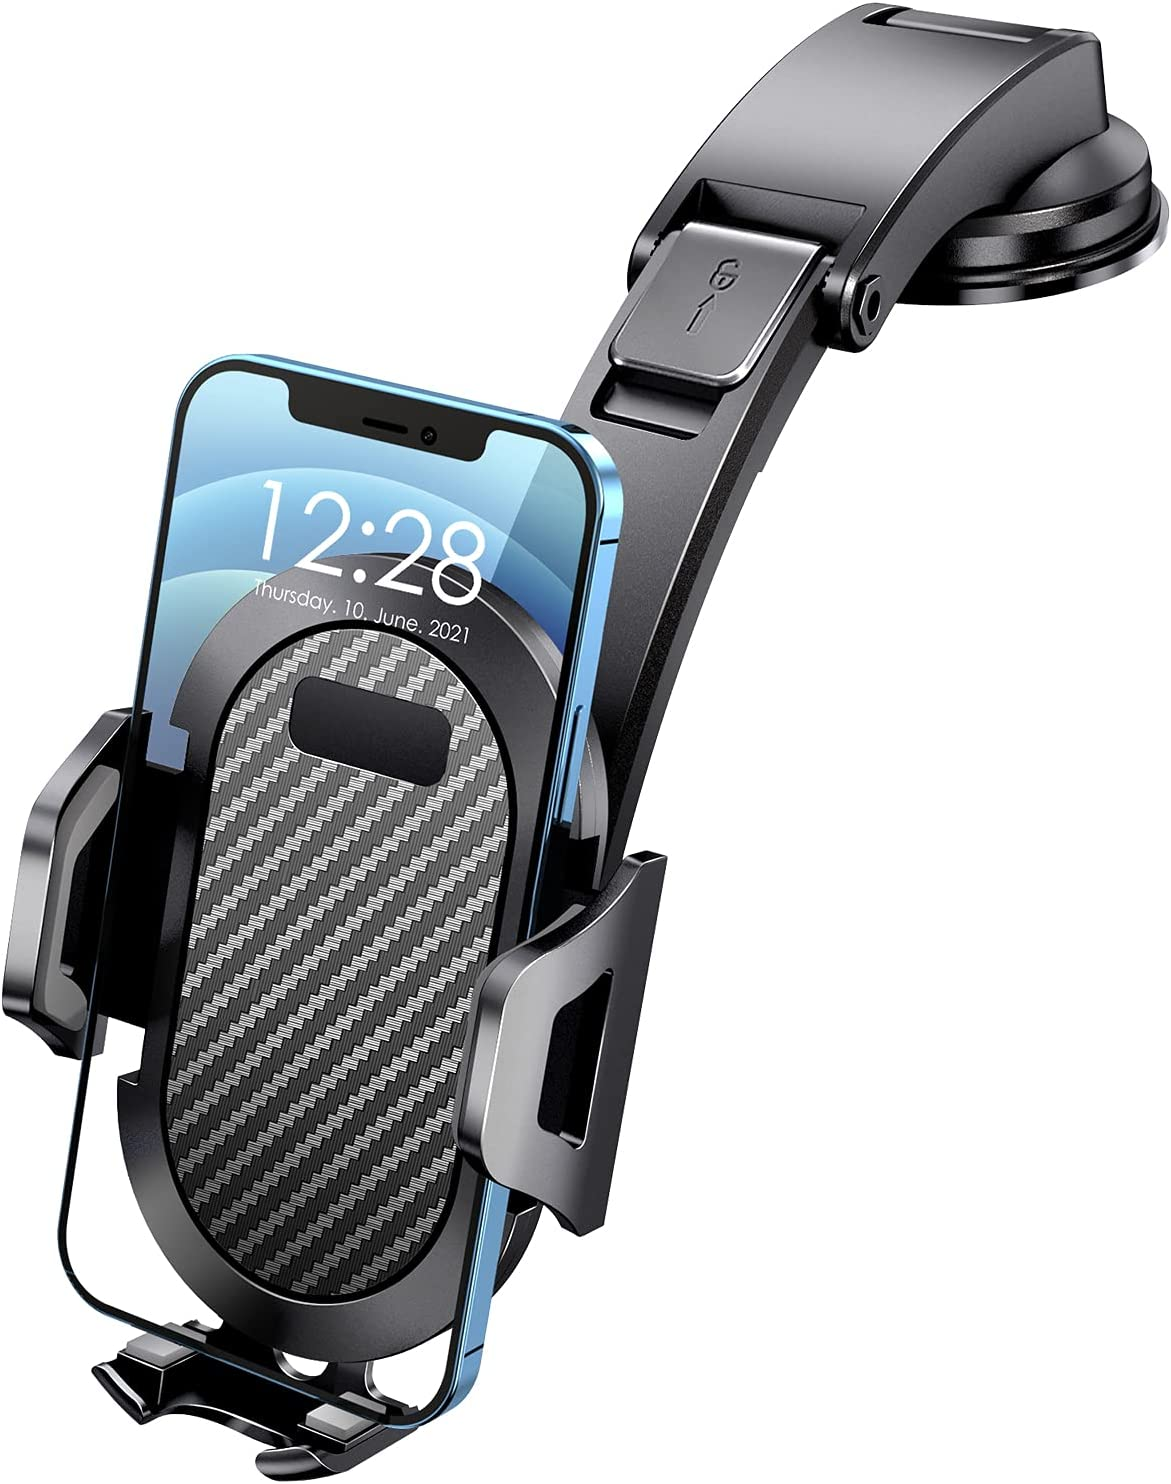 eSamcore Car Phone Mount, Suction Cup Dashboard Car Phone Holder with Recoverable Stickiness, Unobstructed View Cell Phone Automobile Cradles for iPhone 12 11 Samsung Galaxy S21 S20 More